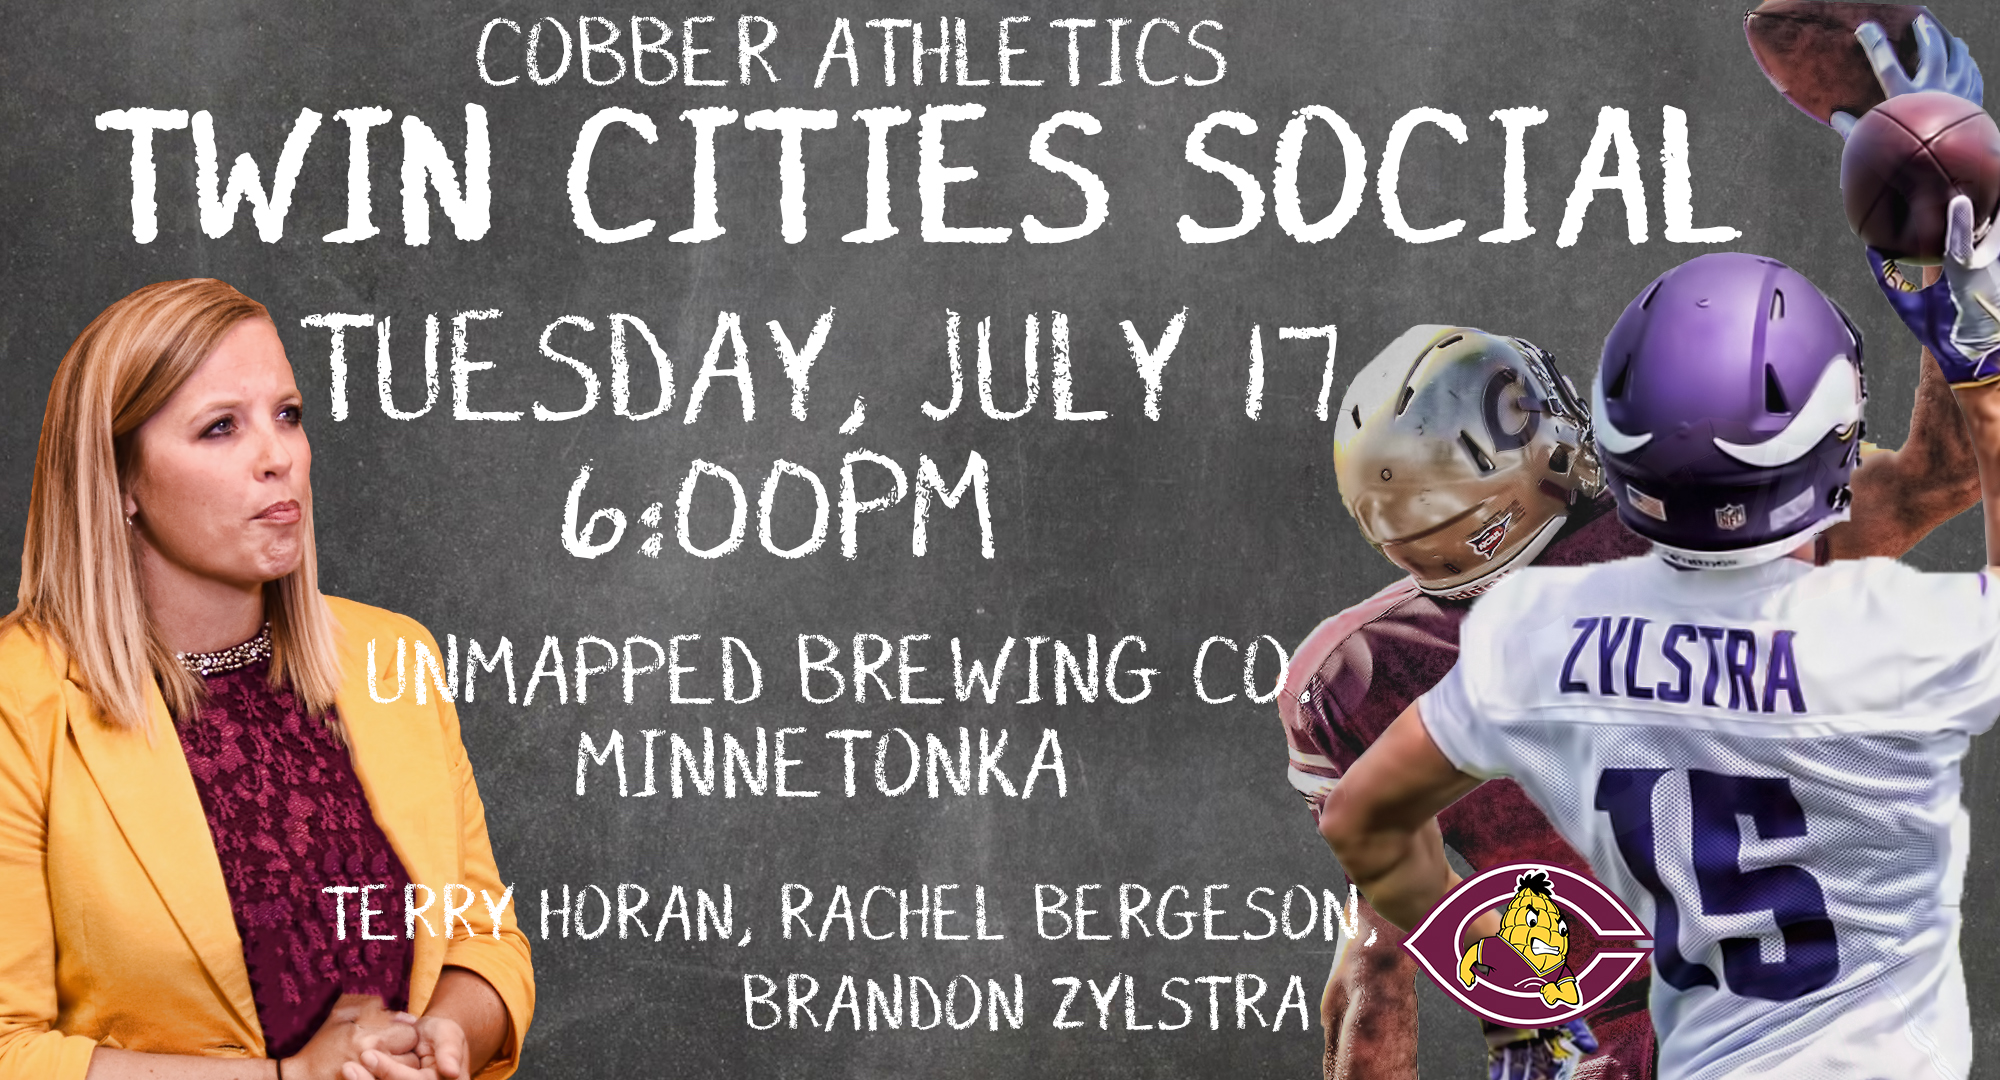 Cobber Athletic Twin Cities Social